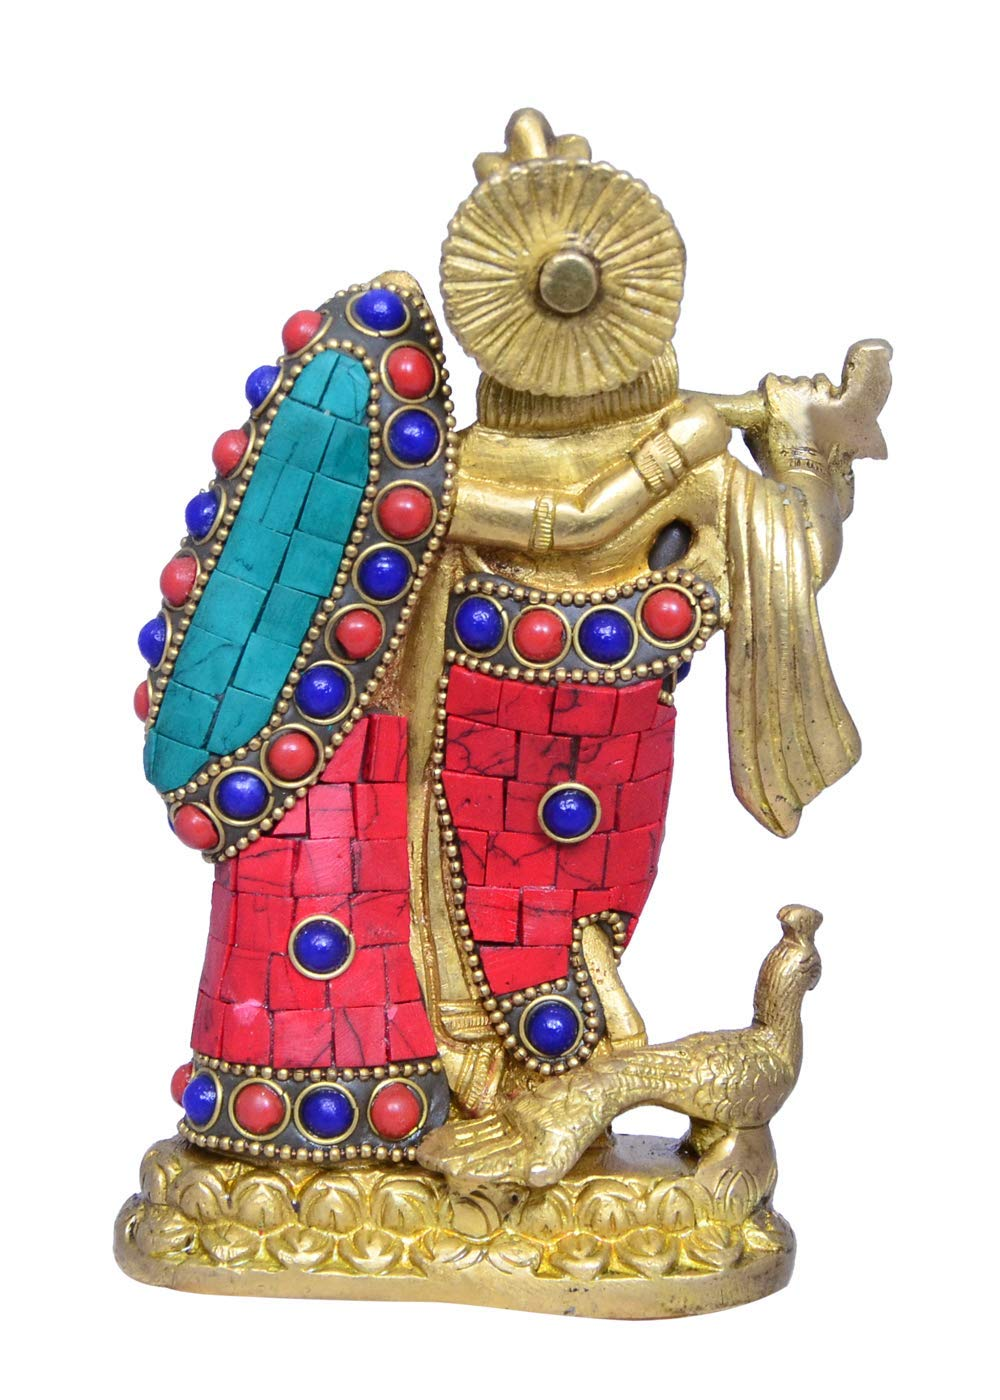 Radha-Krishna Brass Metal Statue Idol with Gemstones for Home Temple House Warming Gift /& Home Decor Office Table or Shop Mandir Puja Shelf Hindu Religious Gift